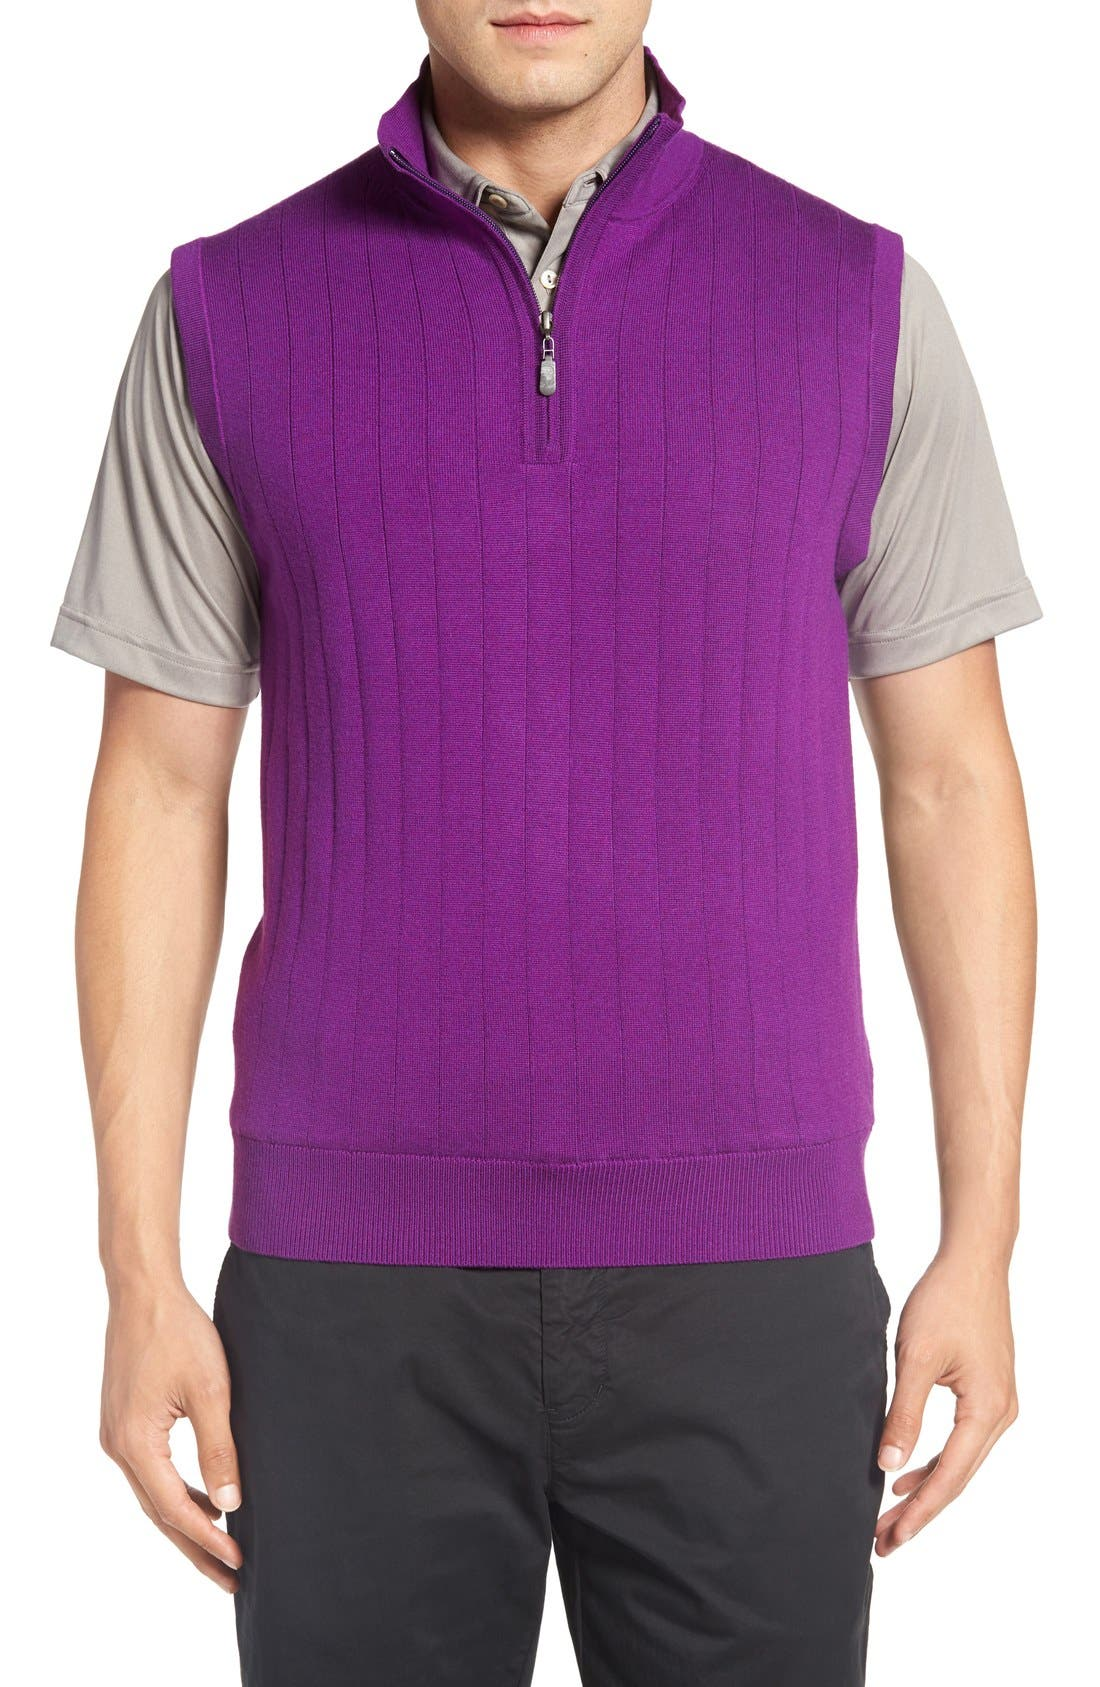 Men's Purple Sweater Vests | Nordstrom